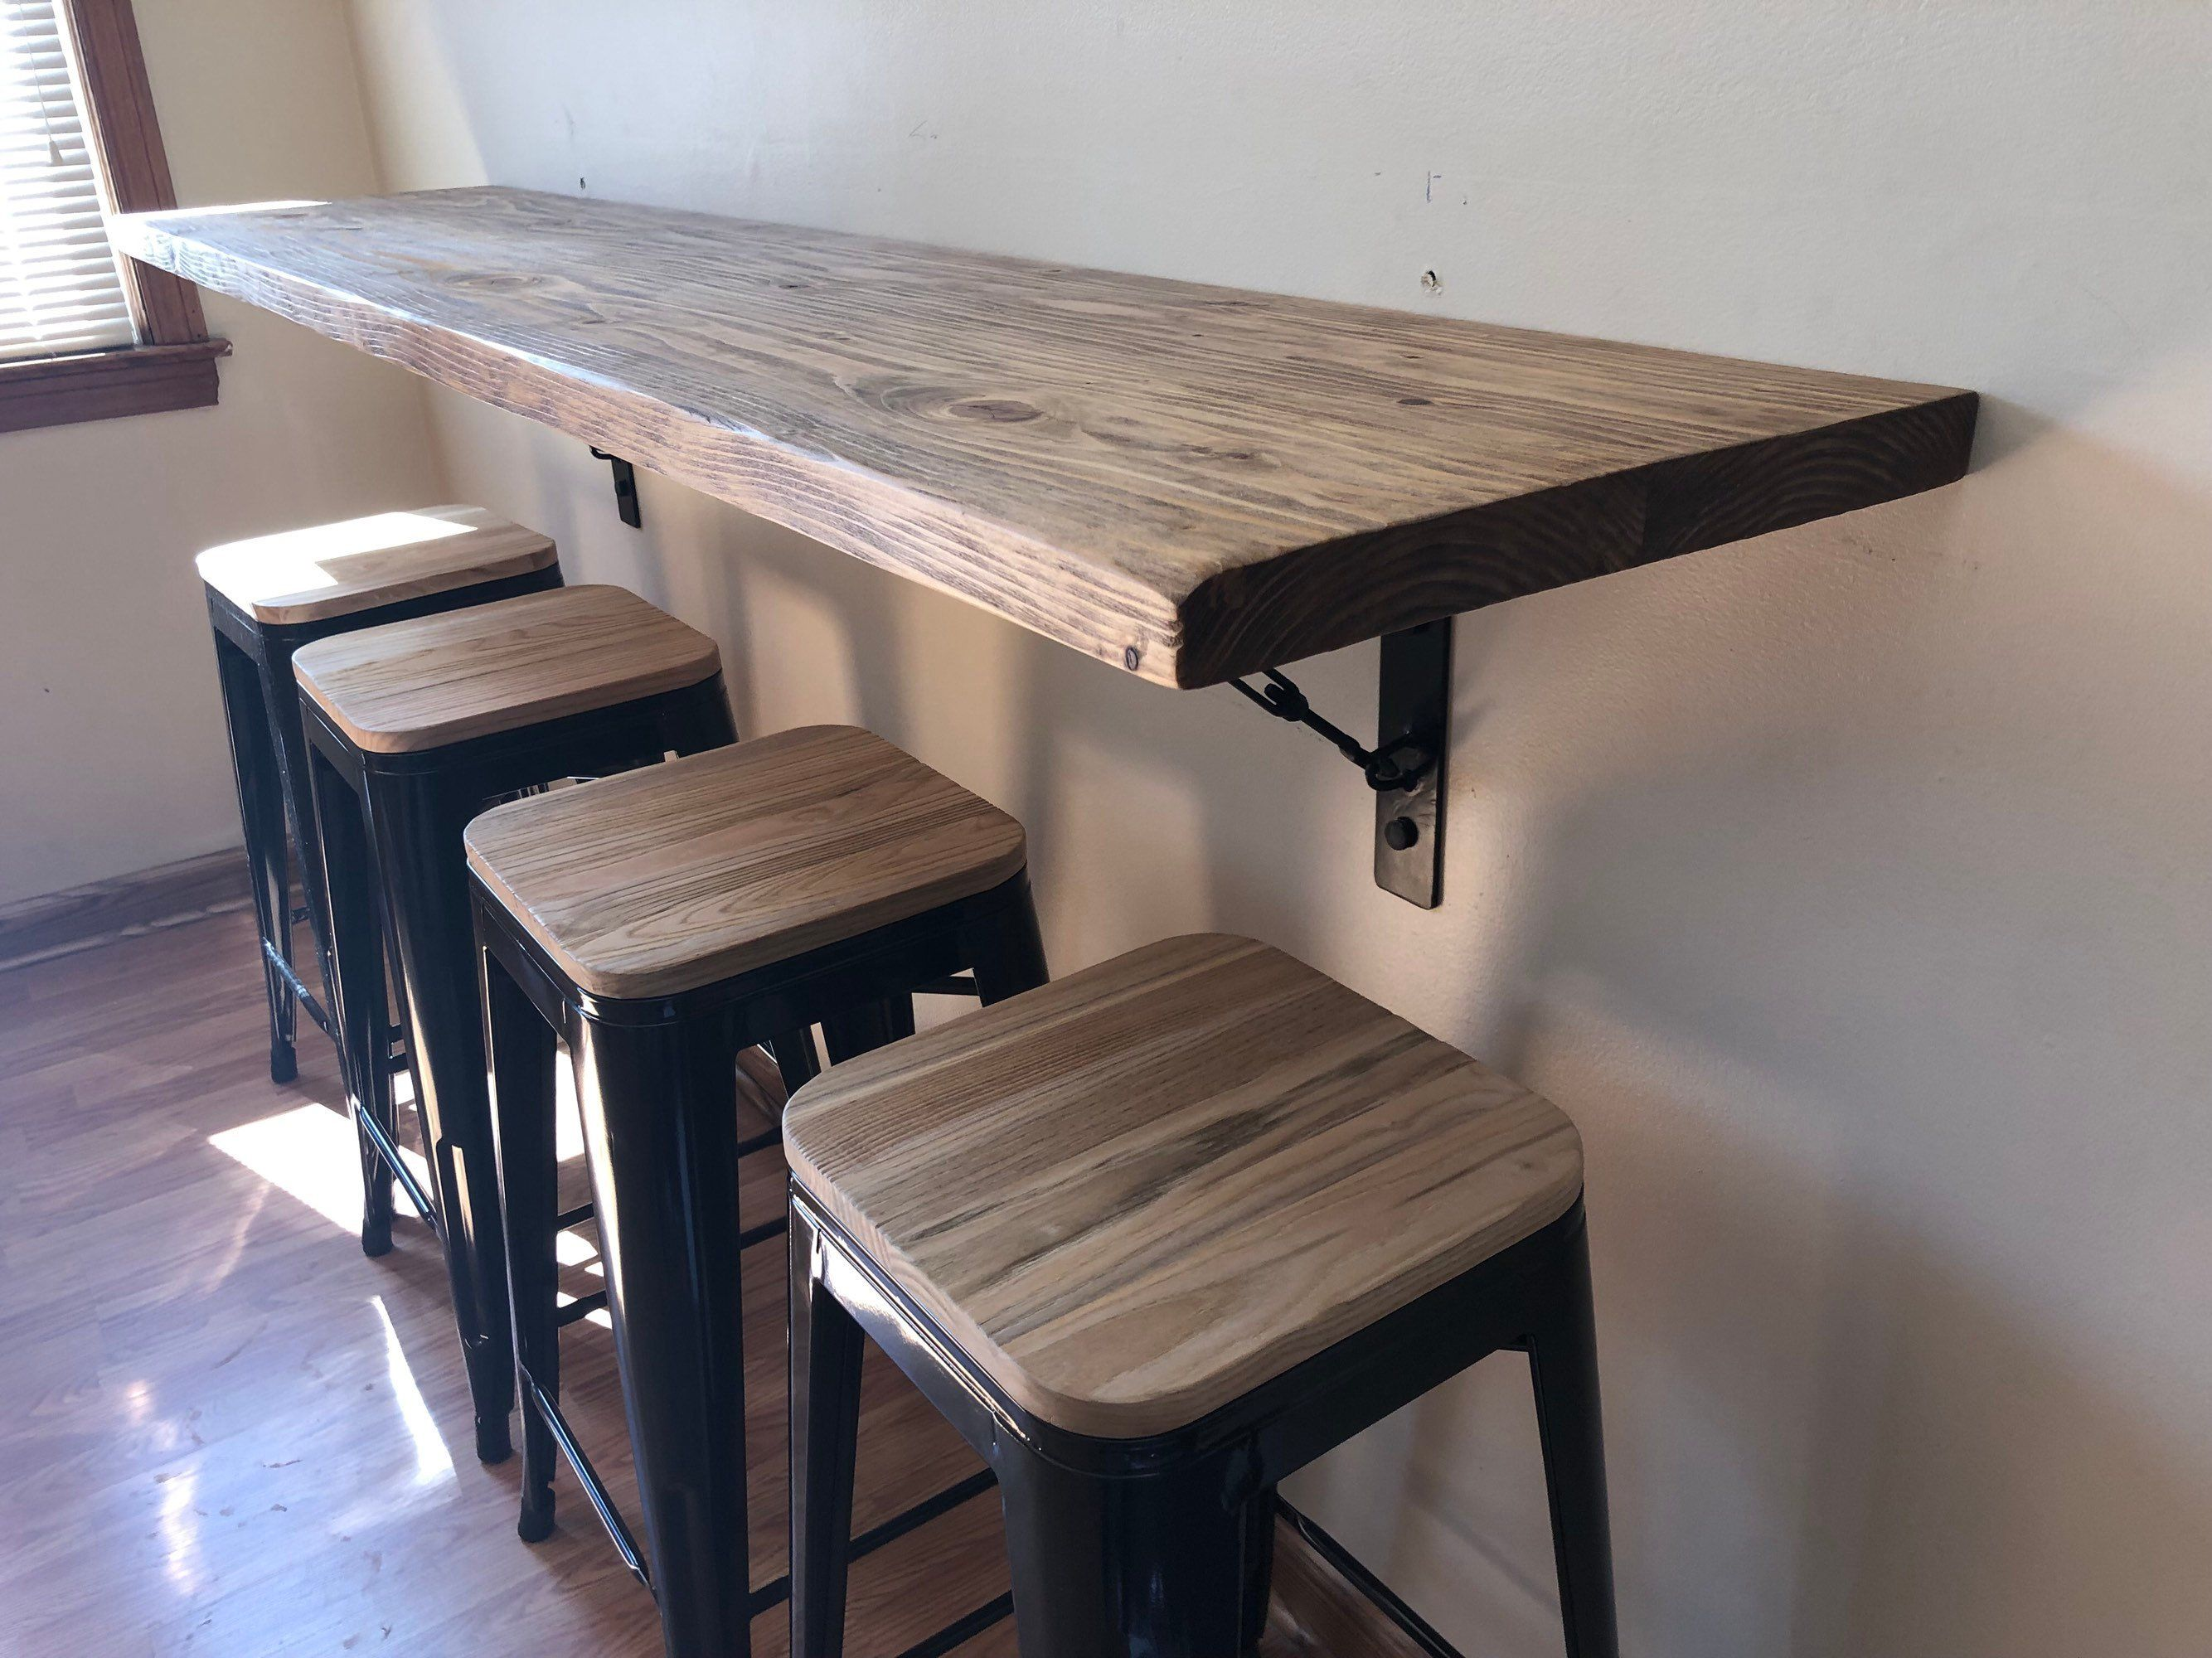 Wall Hanging Dining Table Buffet School Desk Breakfast Nook With Industrial Metal Turnbuckle Brackets In 2021 Kitchen Bar Table Kitchen Bar Wall Mounted Bar Wall mounted kitchen bar table